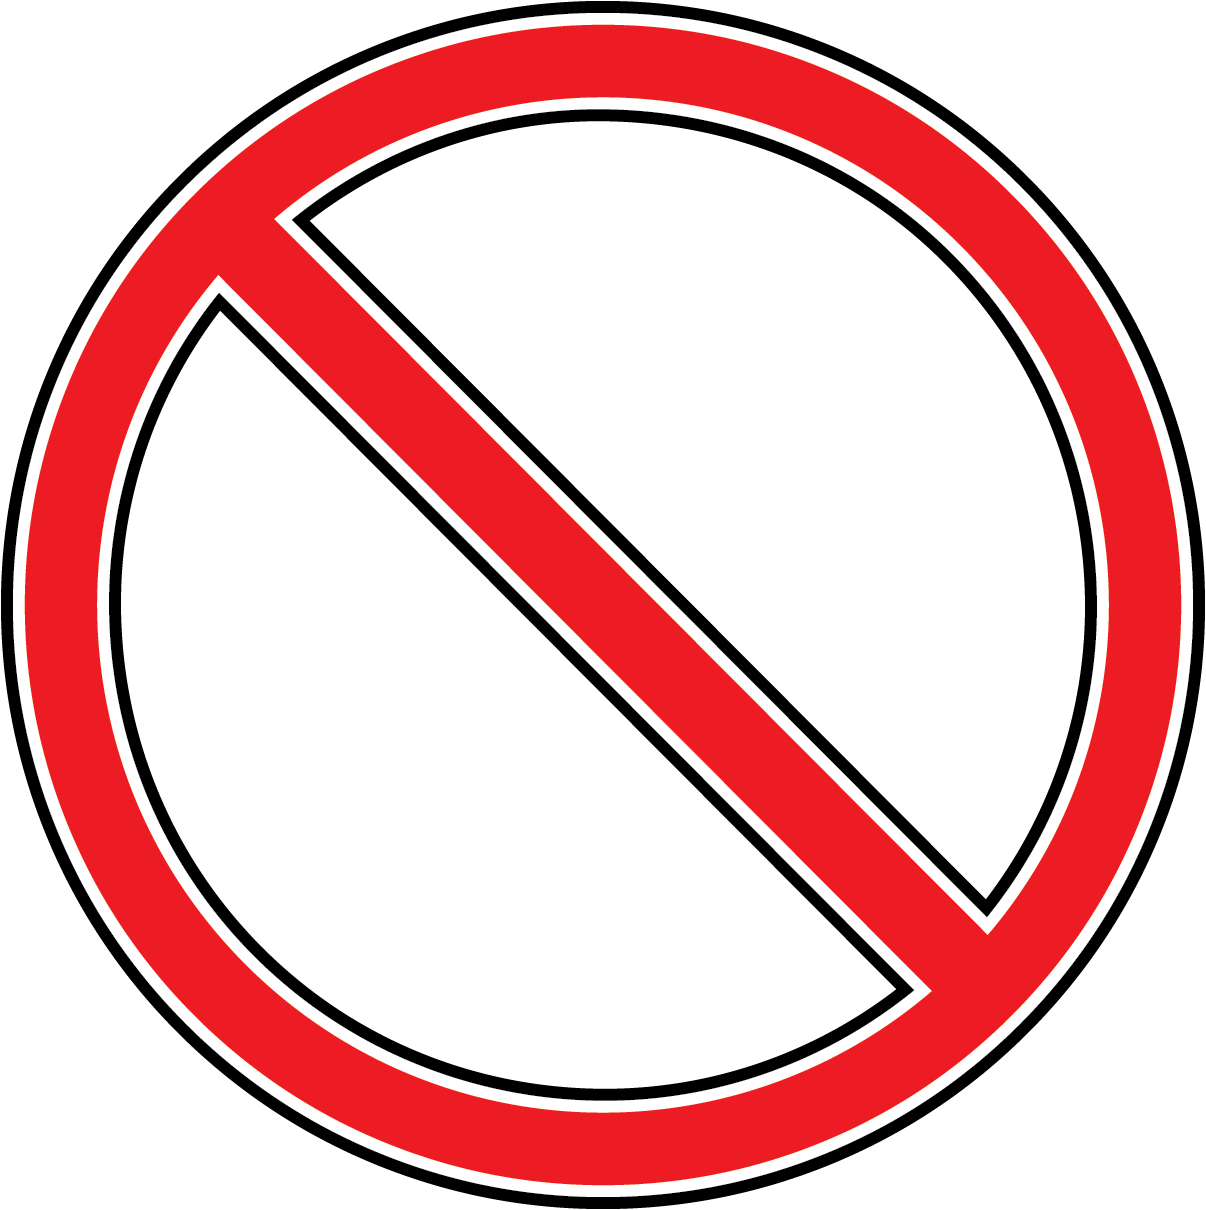 Do Not Symbol Clipart